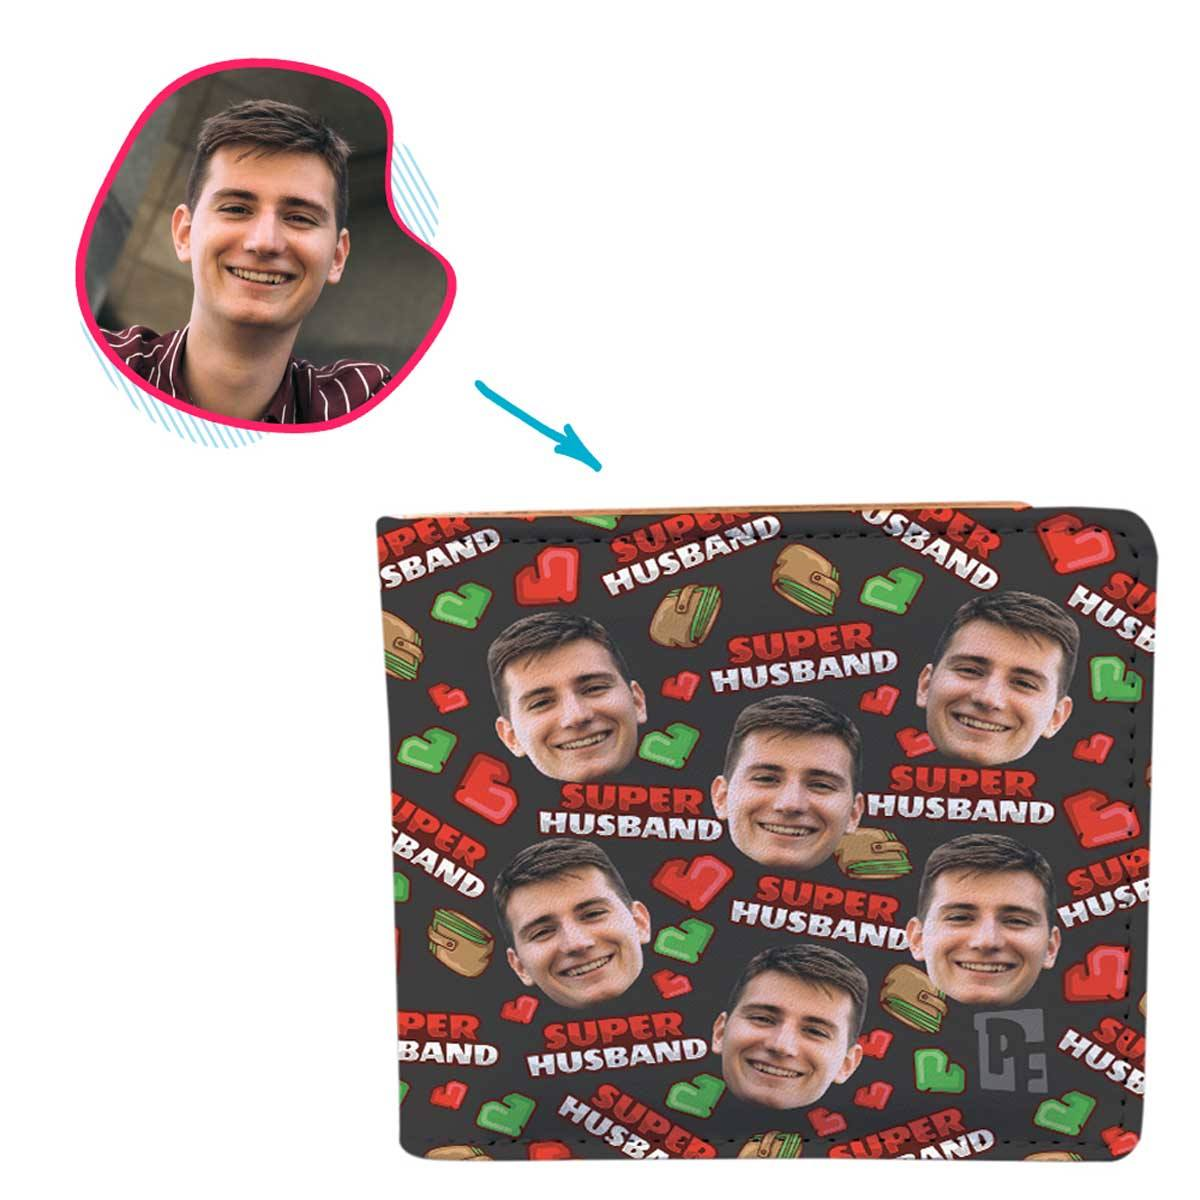 Dark Husband personalized wallet with photo of face printed on it